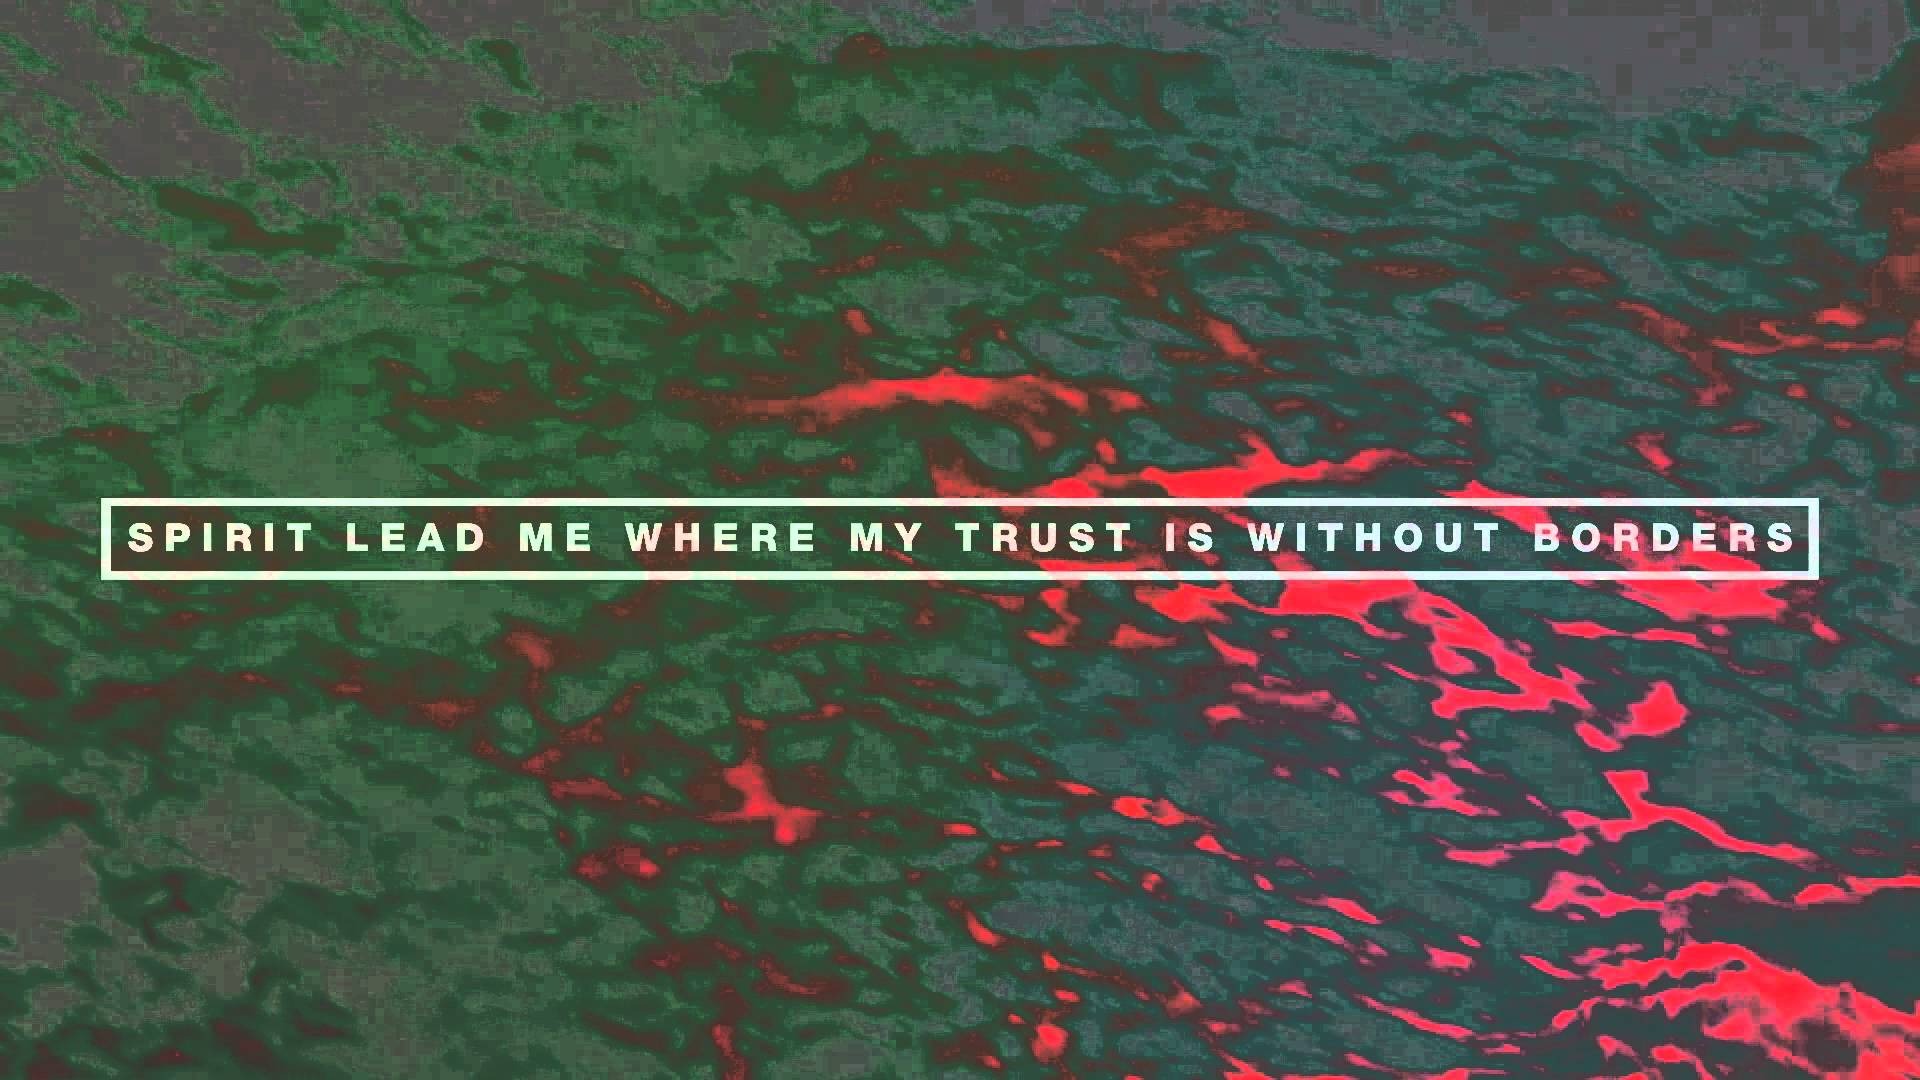 HILLSONG WORSHIP WALLPAPERS FREE Wallpapers Background images 1920x1080